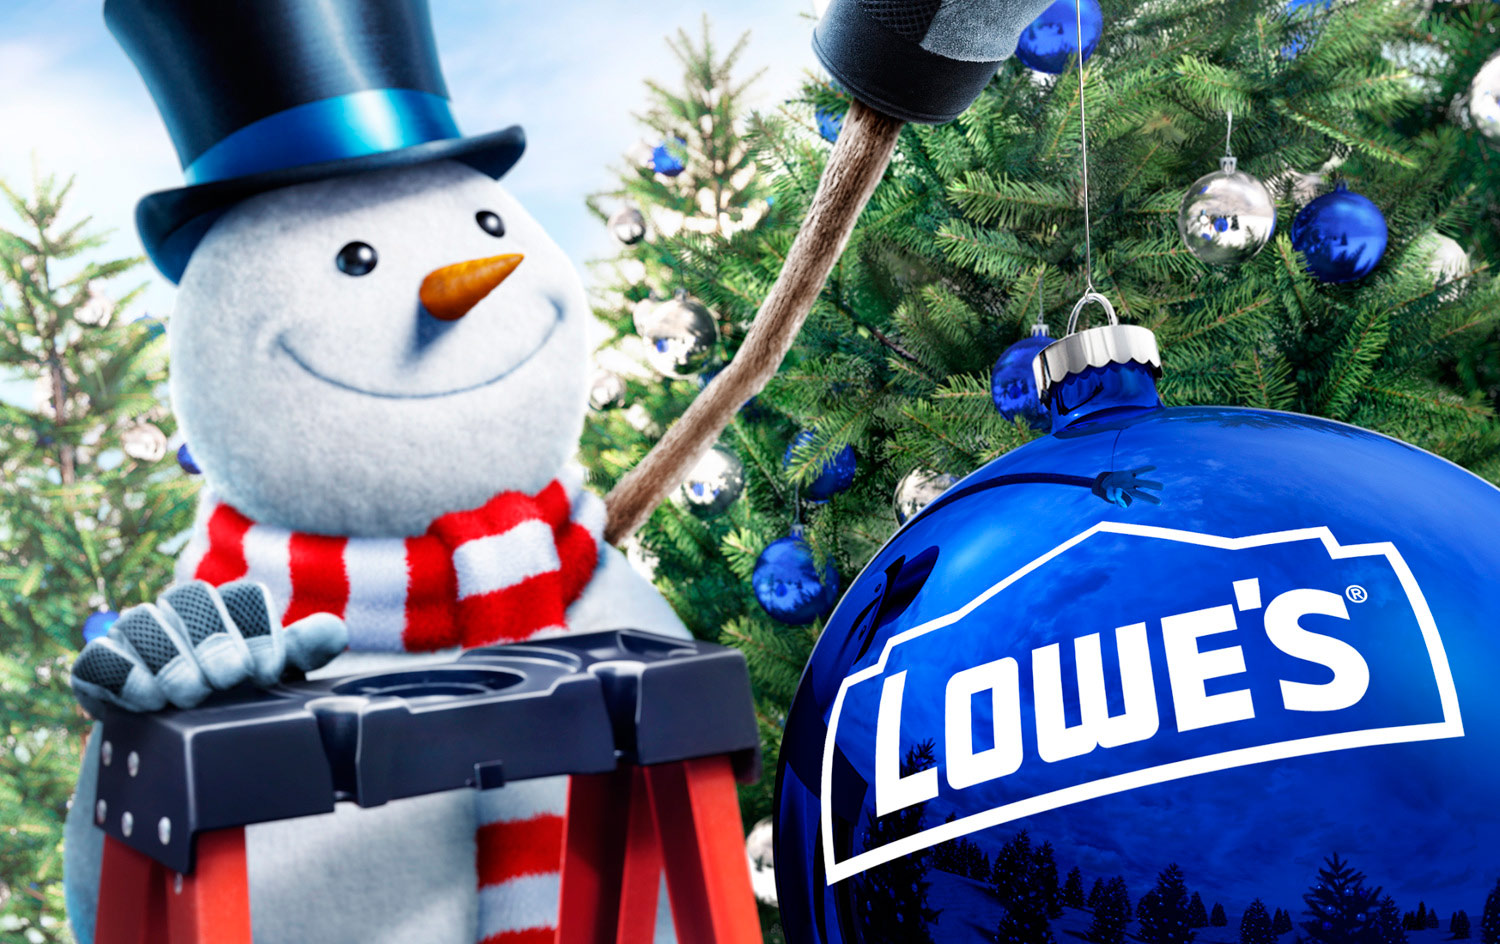 lowes_2013snowman_orn_1500